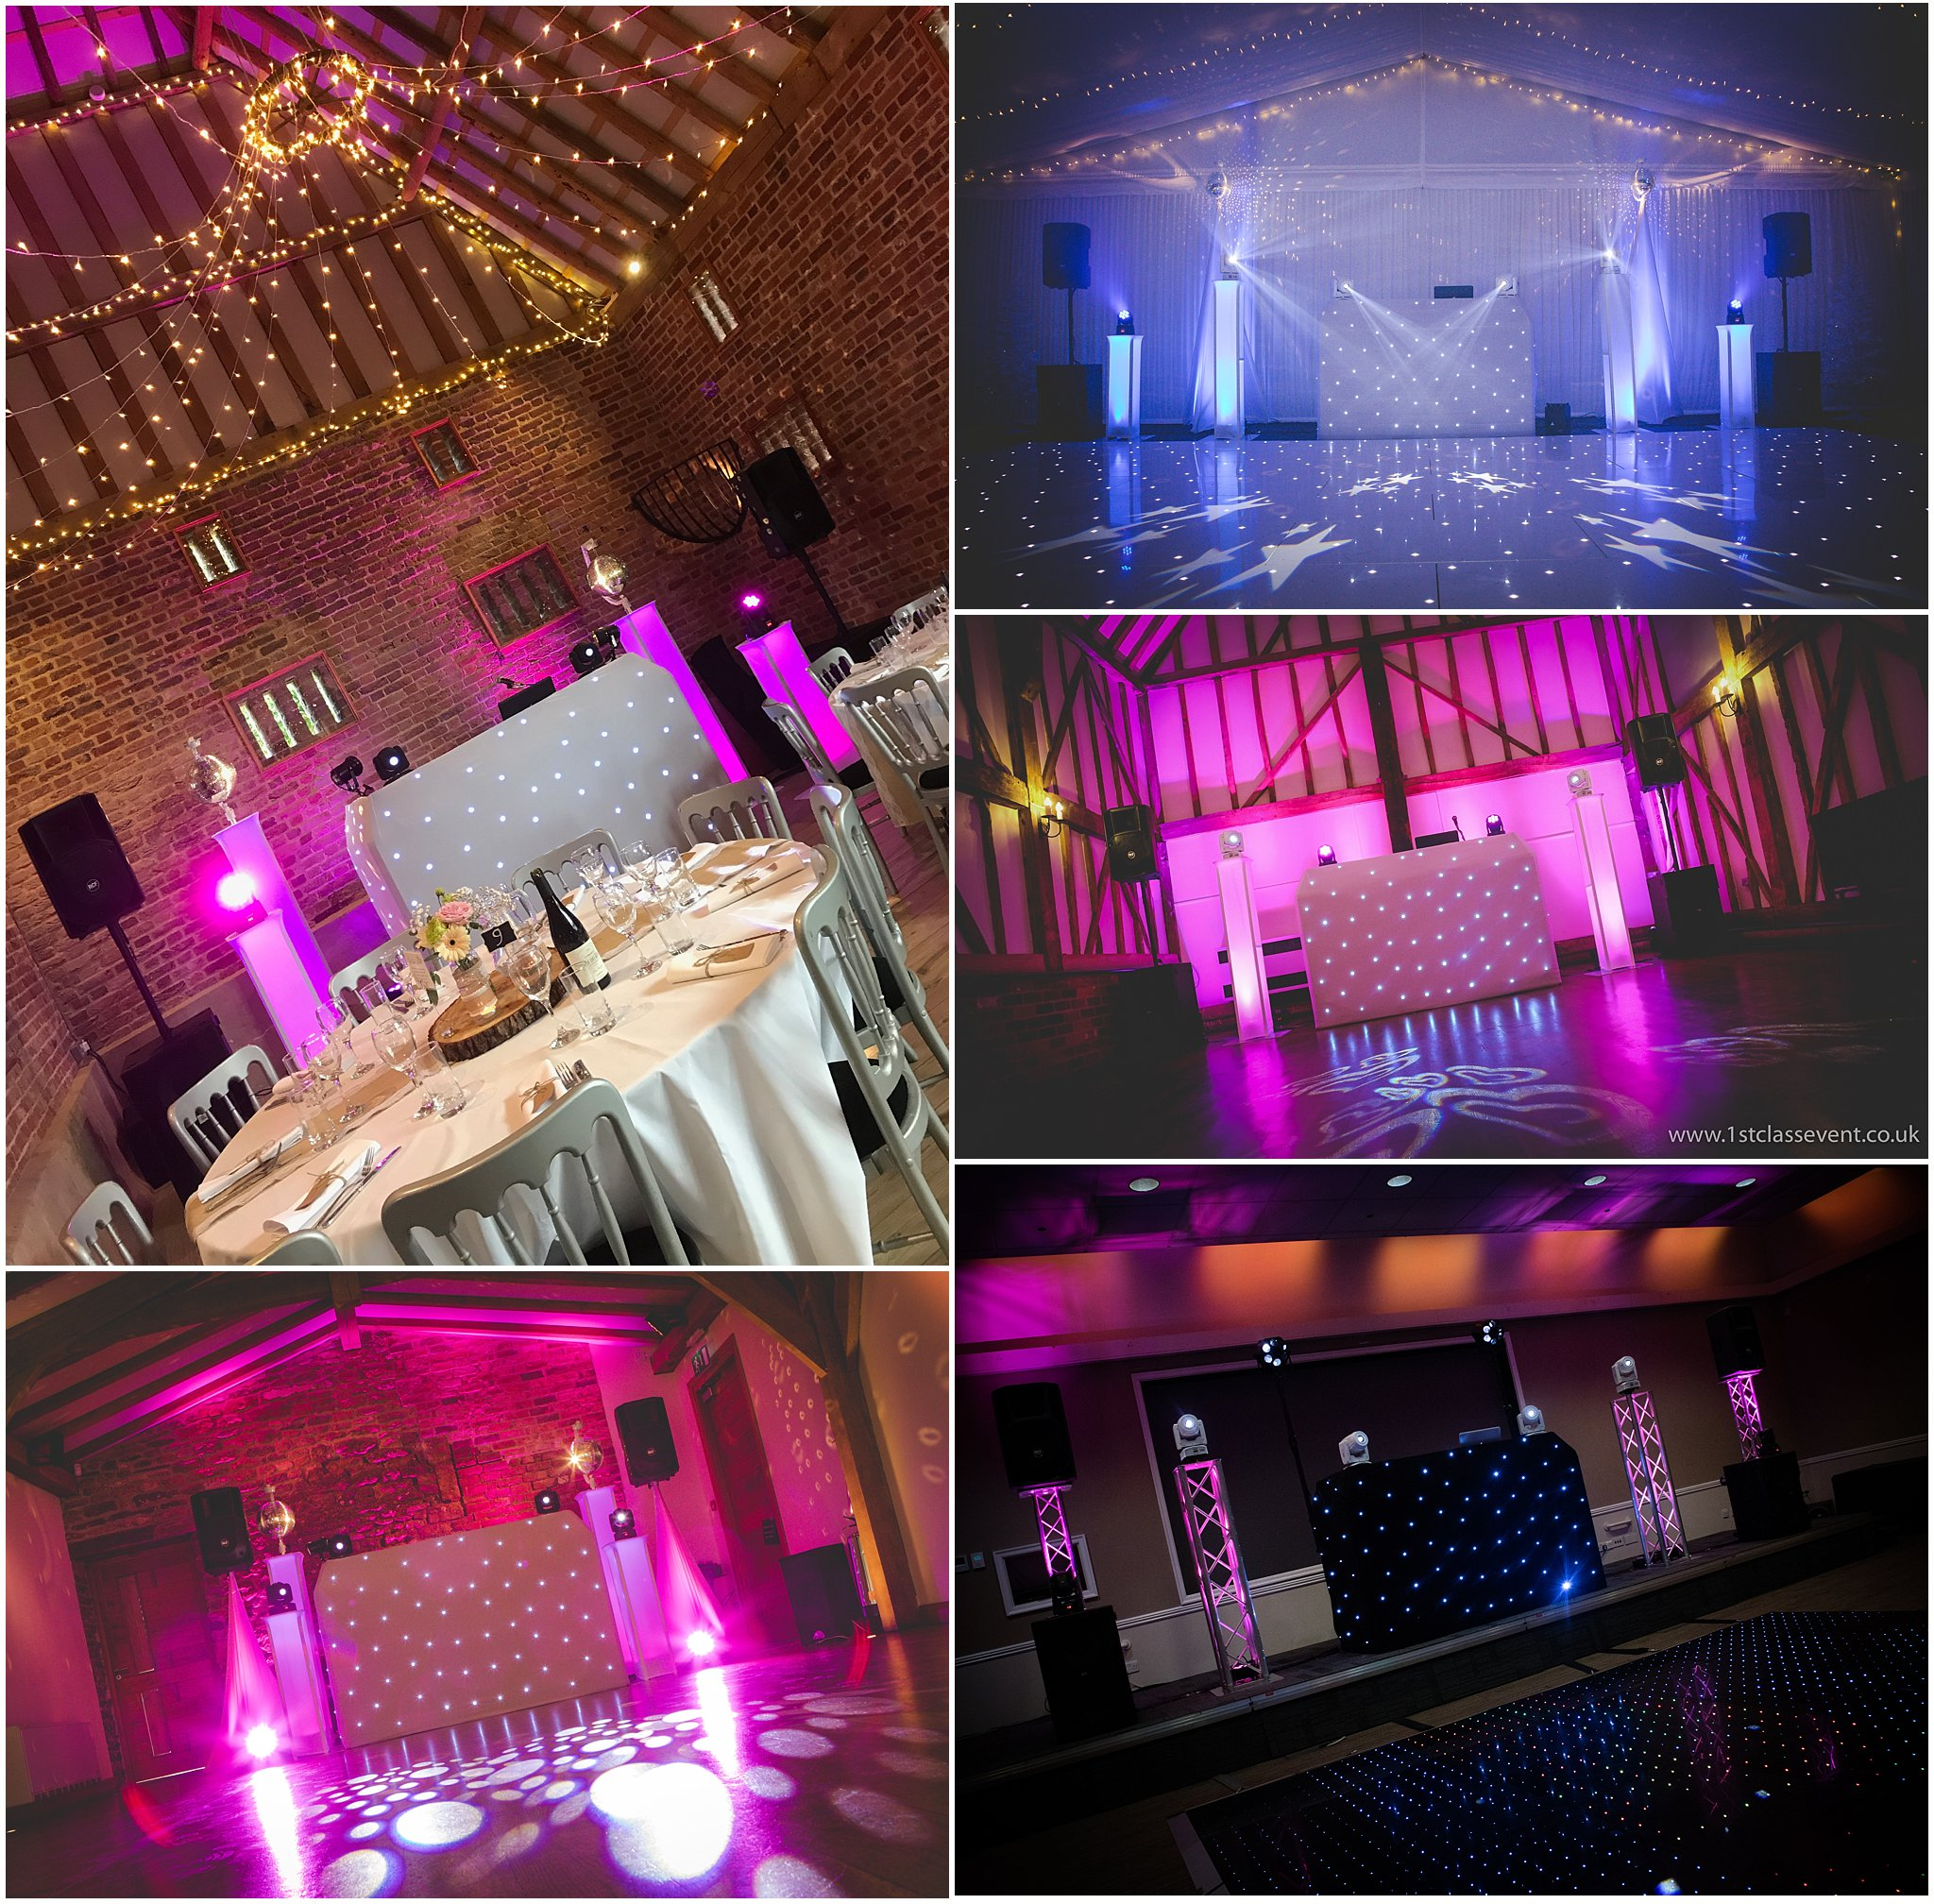 white wedding disco setup